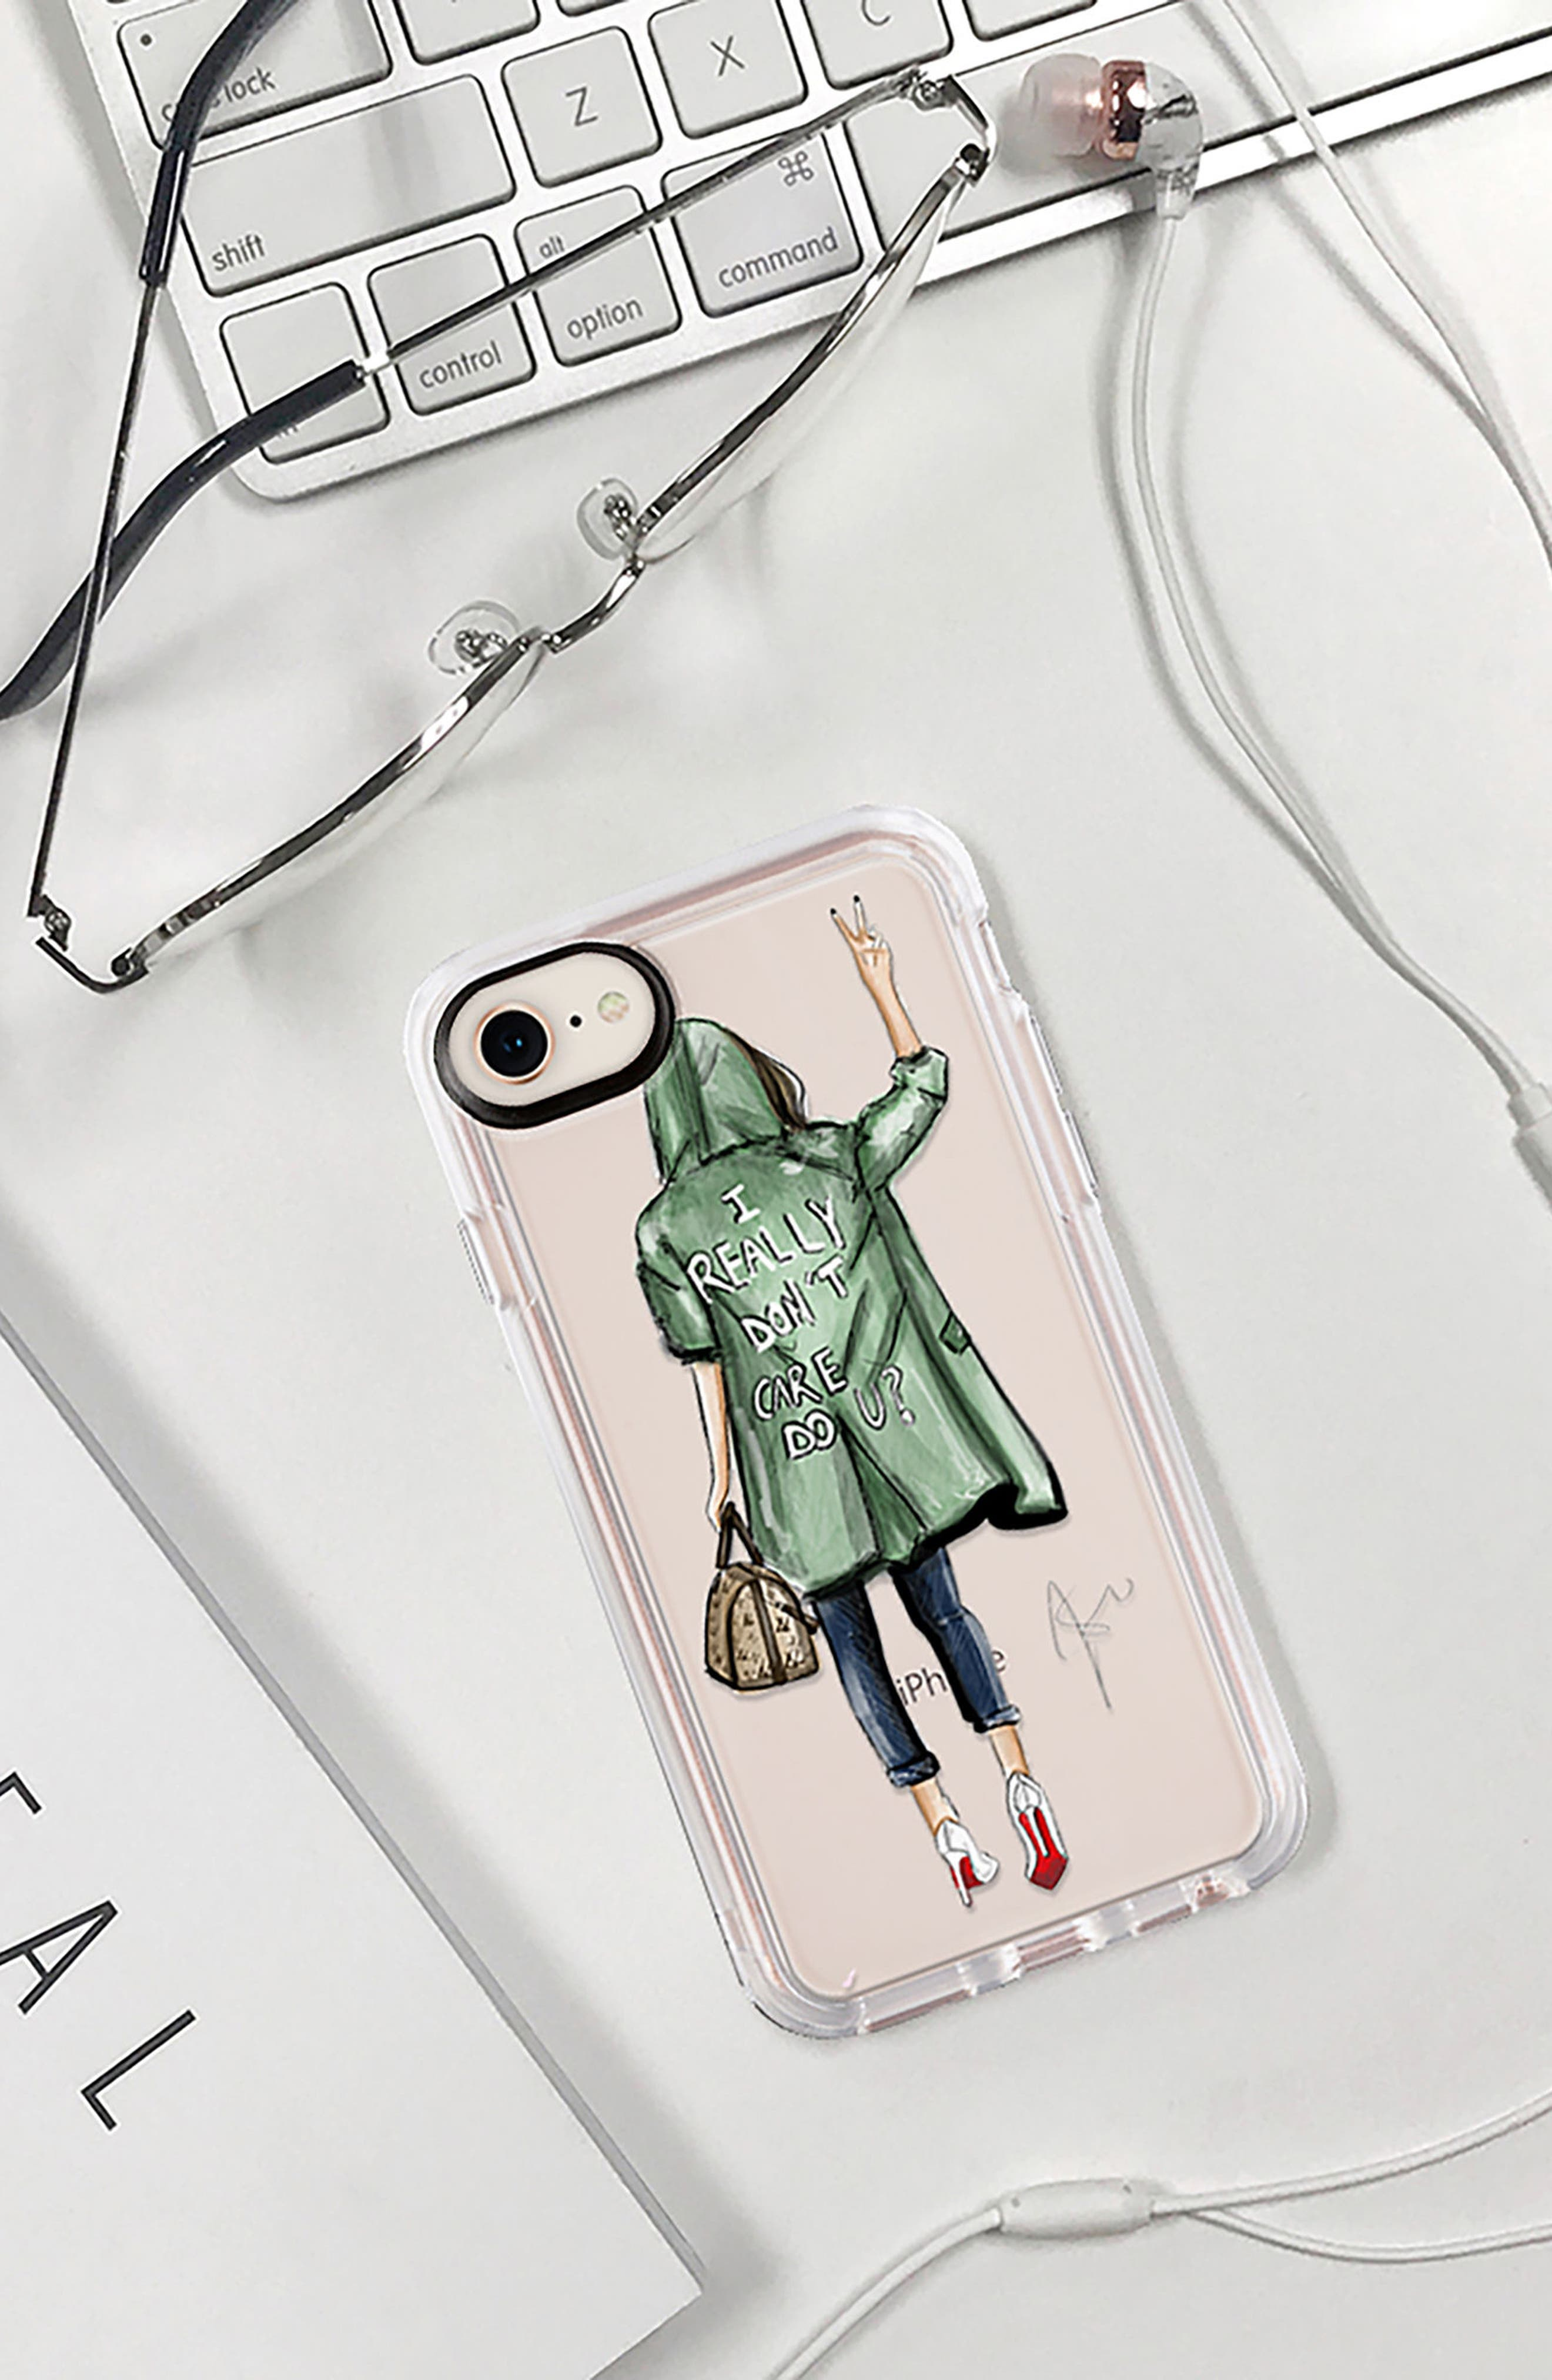 I Really Don't Care iPhone 7/8 & 7/8 Plus Case,                             Alternate thumbnail 8, color,                             300